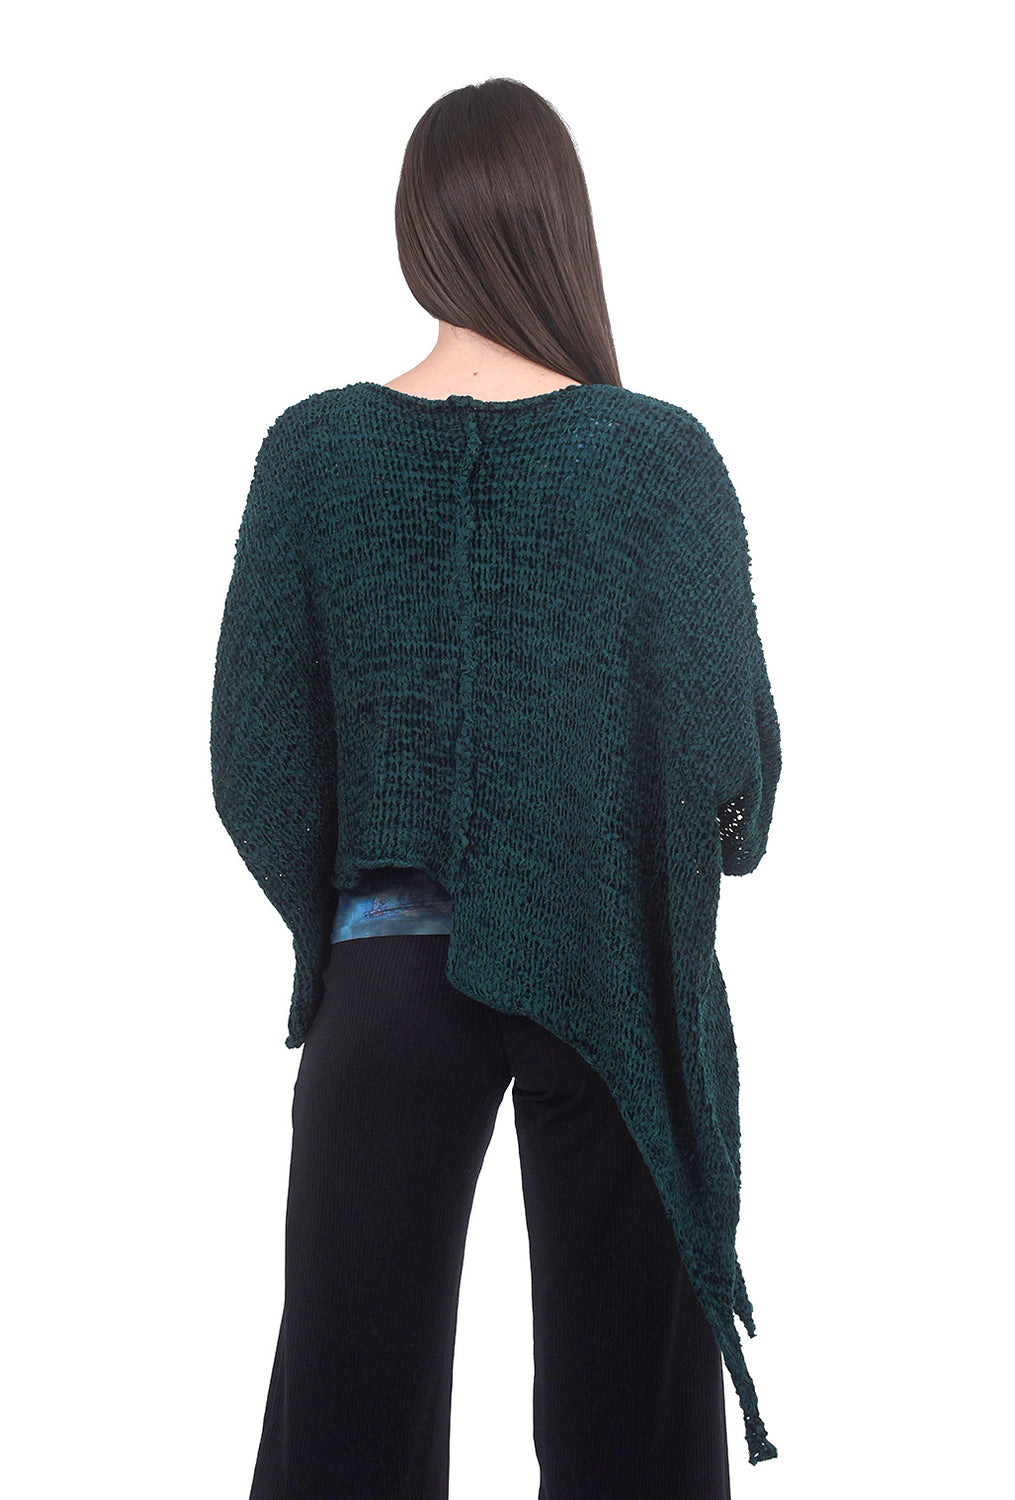 B&K Moda Textural Amorphous Pullover, Jade One Size Jade